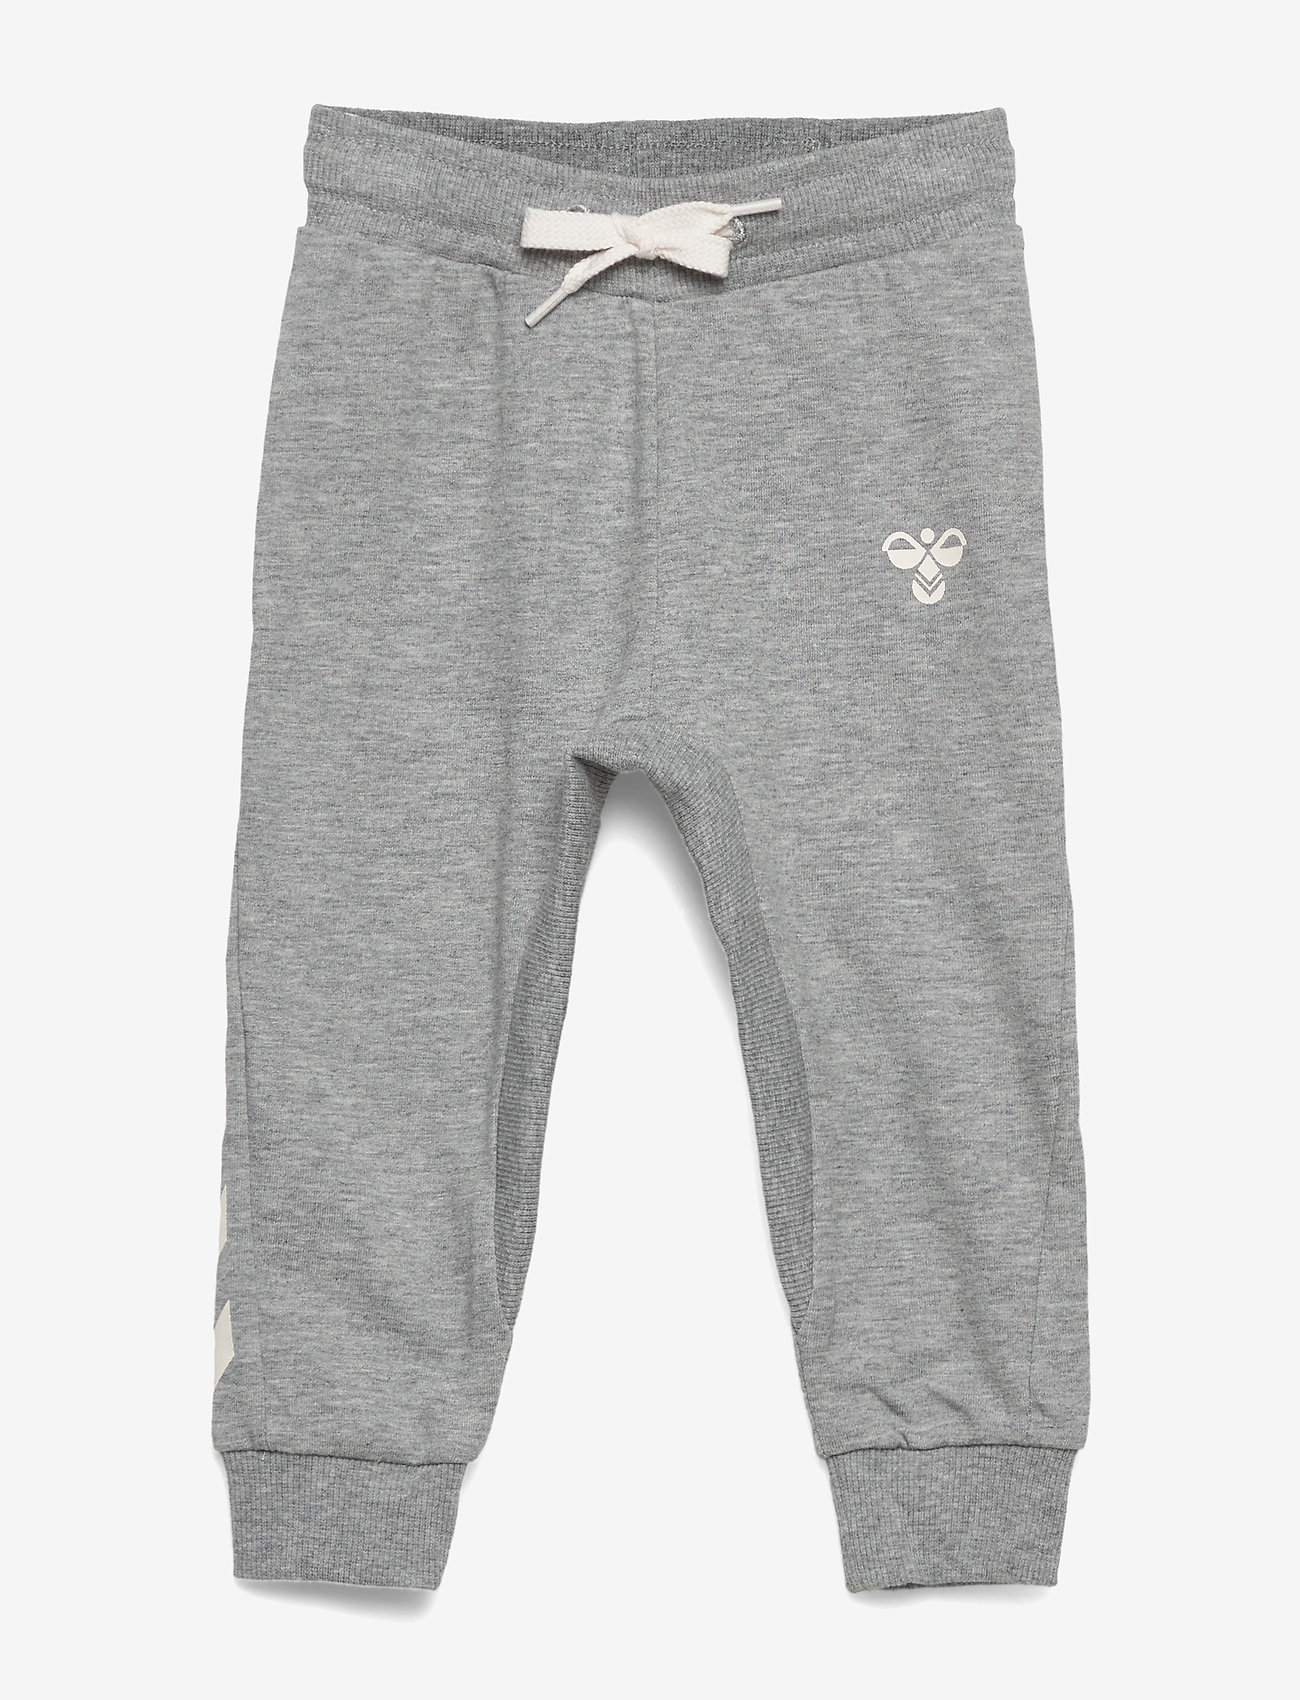 Hummel - HMLAPPLE PANTS - sweatpants - grey melange - 0